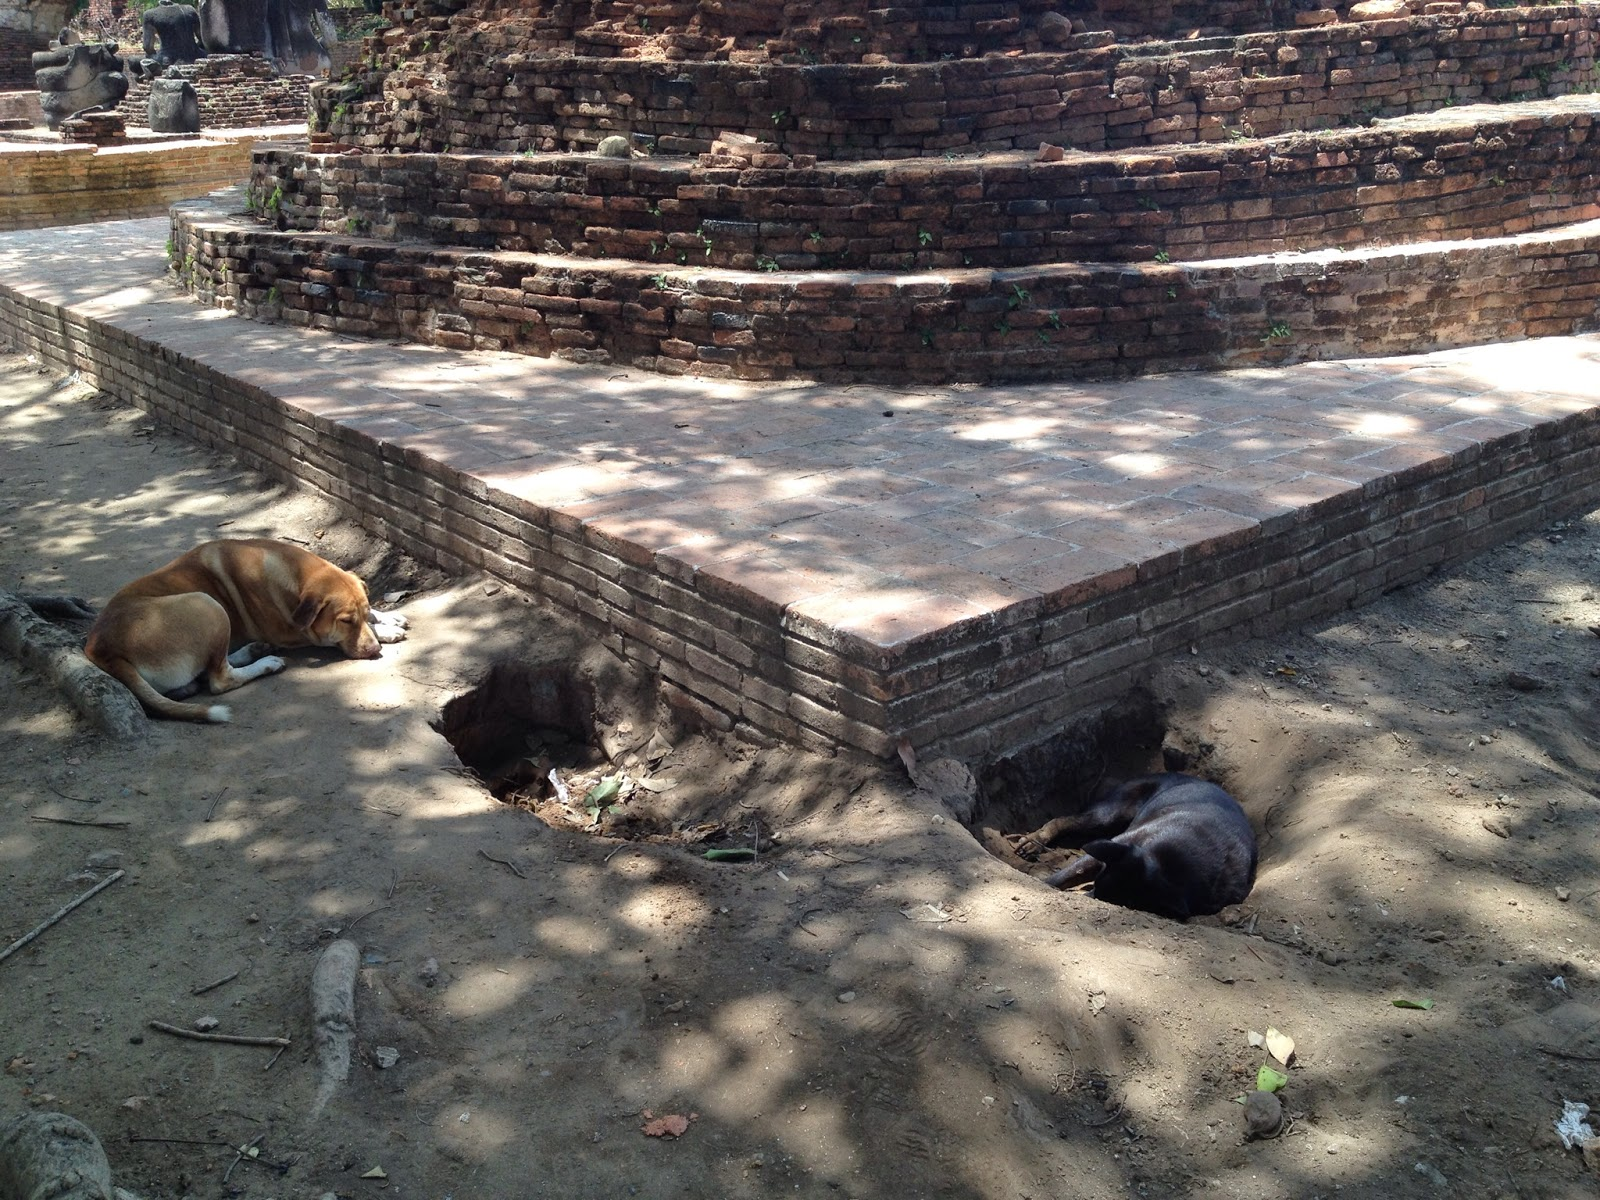 Ayutthaya - Dogs trying to stay cool in the heat